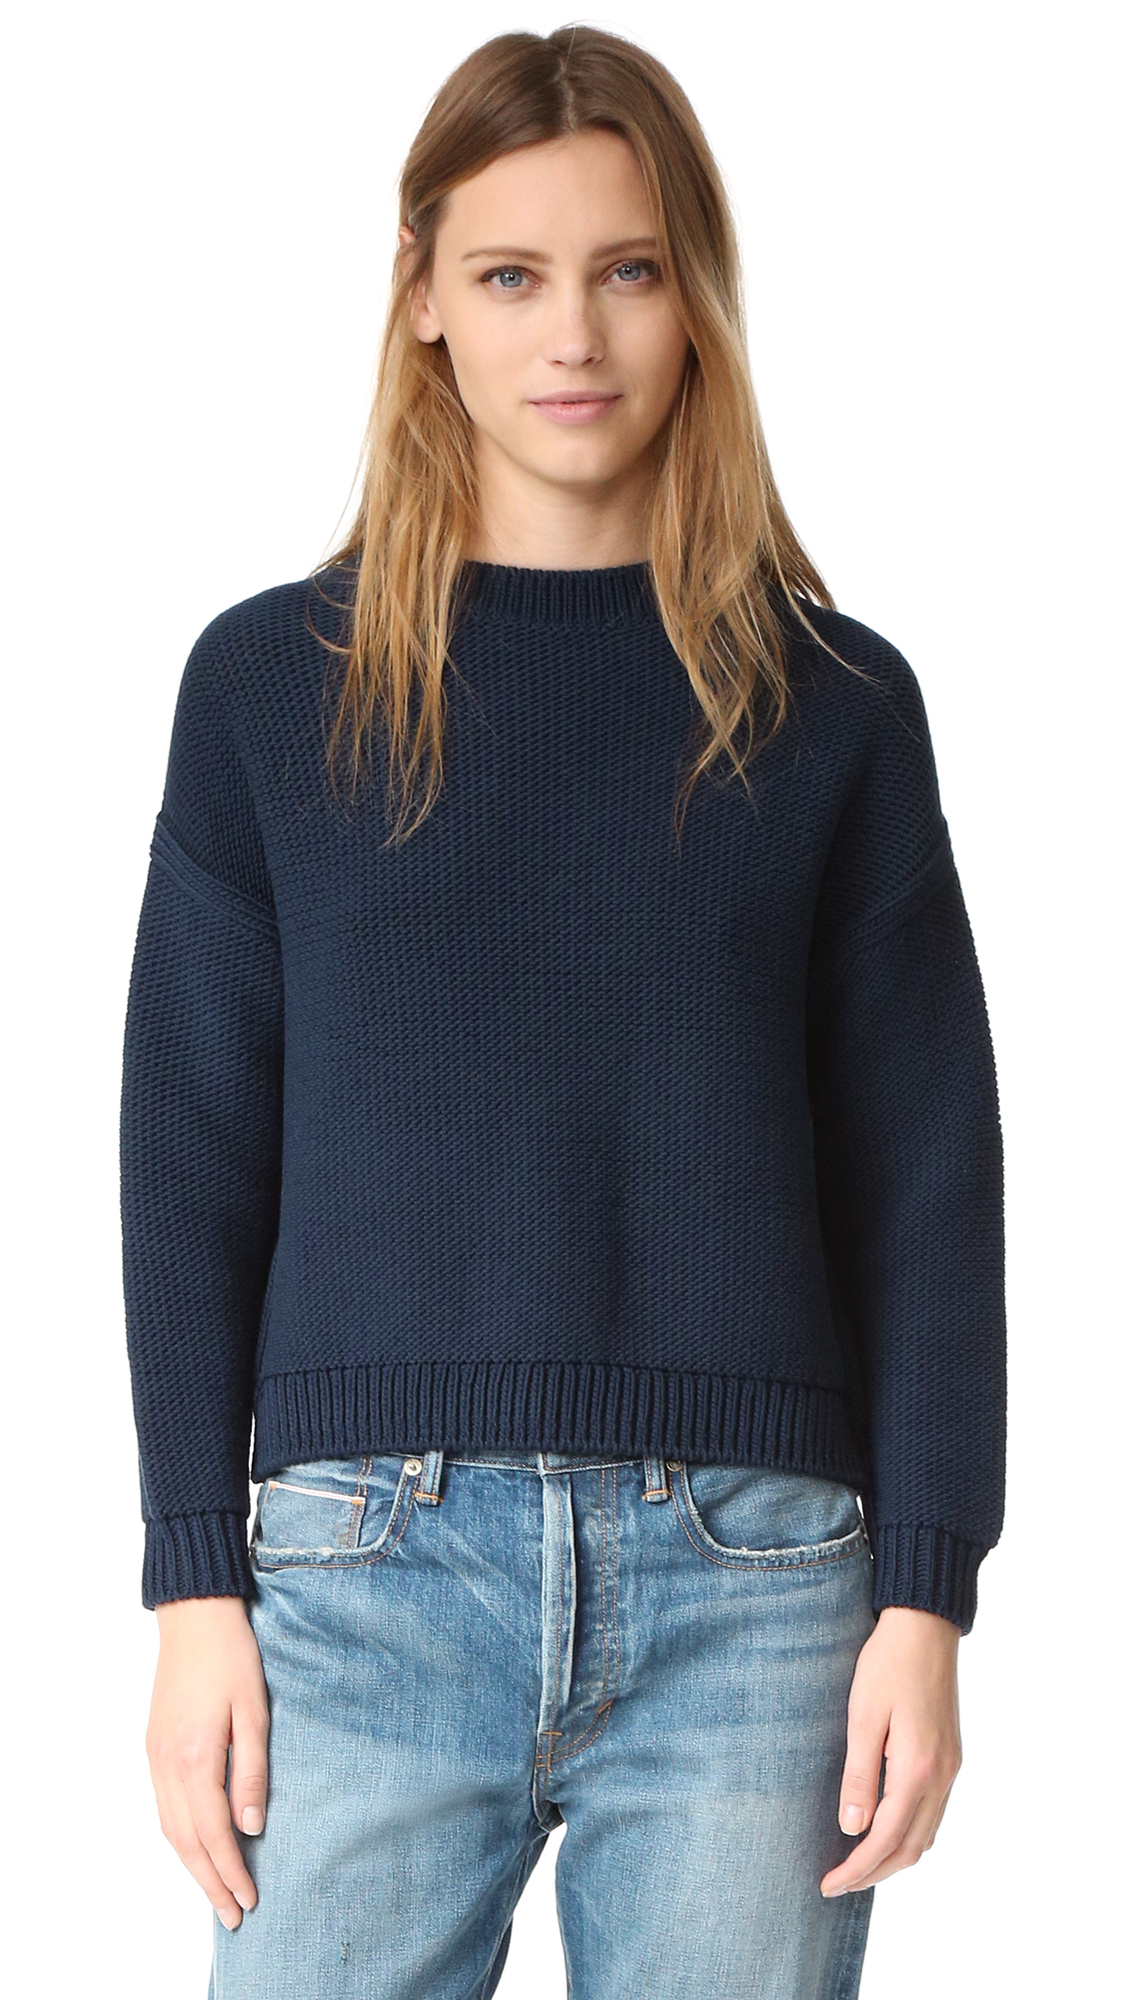 A boxy fit lends a relaxed feel to this easy Vince sweater. Ribbed edges. Dropped shoulder seams and long sleeves. Fabric: Knit. 70% cotton/30% polyamide. Hand wash or dry clean. Imported, China. Yarn from Italy. Measurements Length: 19.75